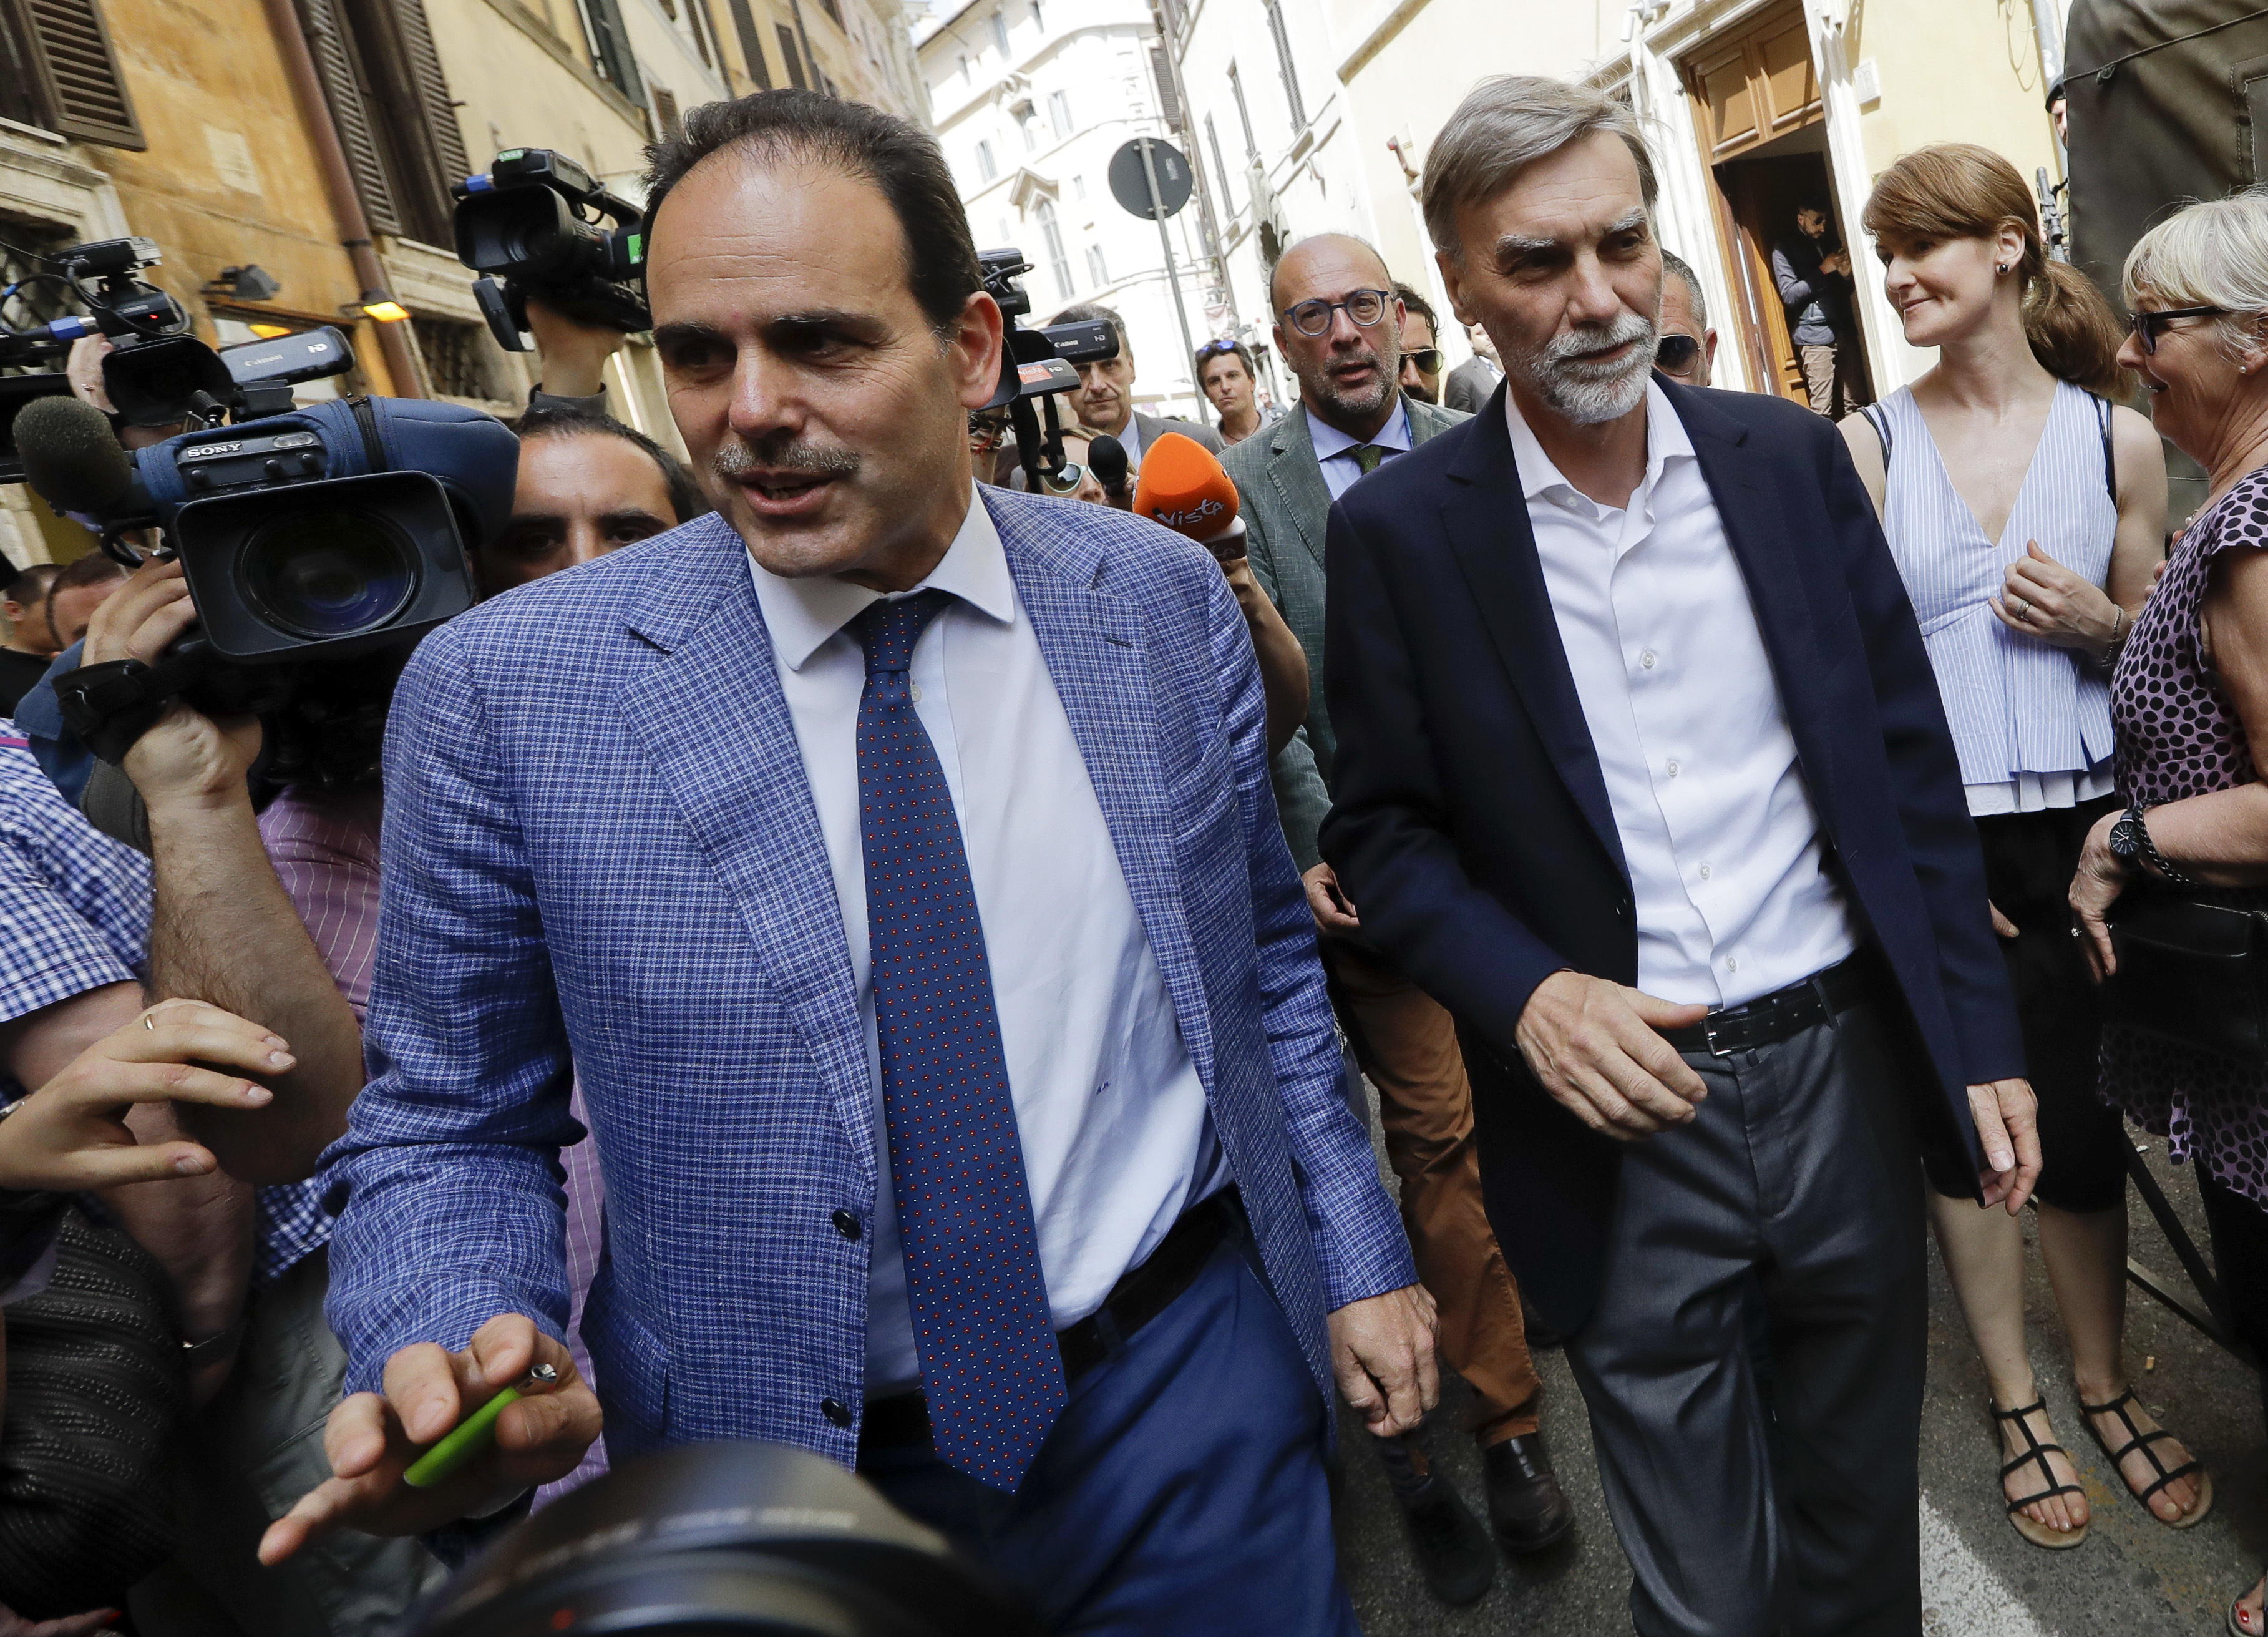 Democratic Party members Andrea Marcucci, left, group leader at the Italian Senate and Graziano Delrio group leader at the Lower Chamber walk in Rome, April 24, 2018.